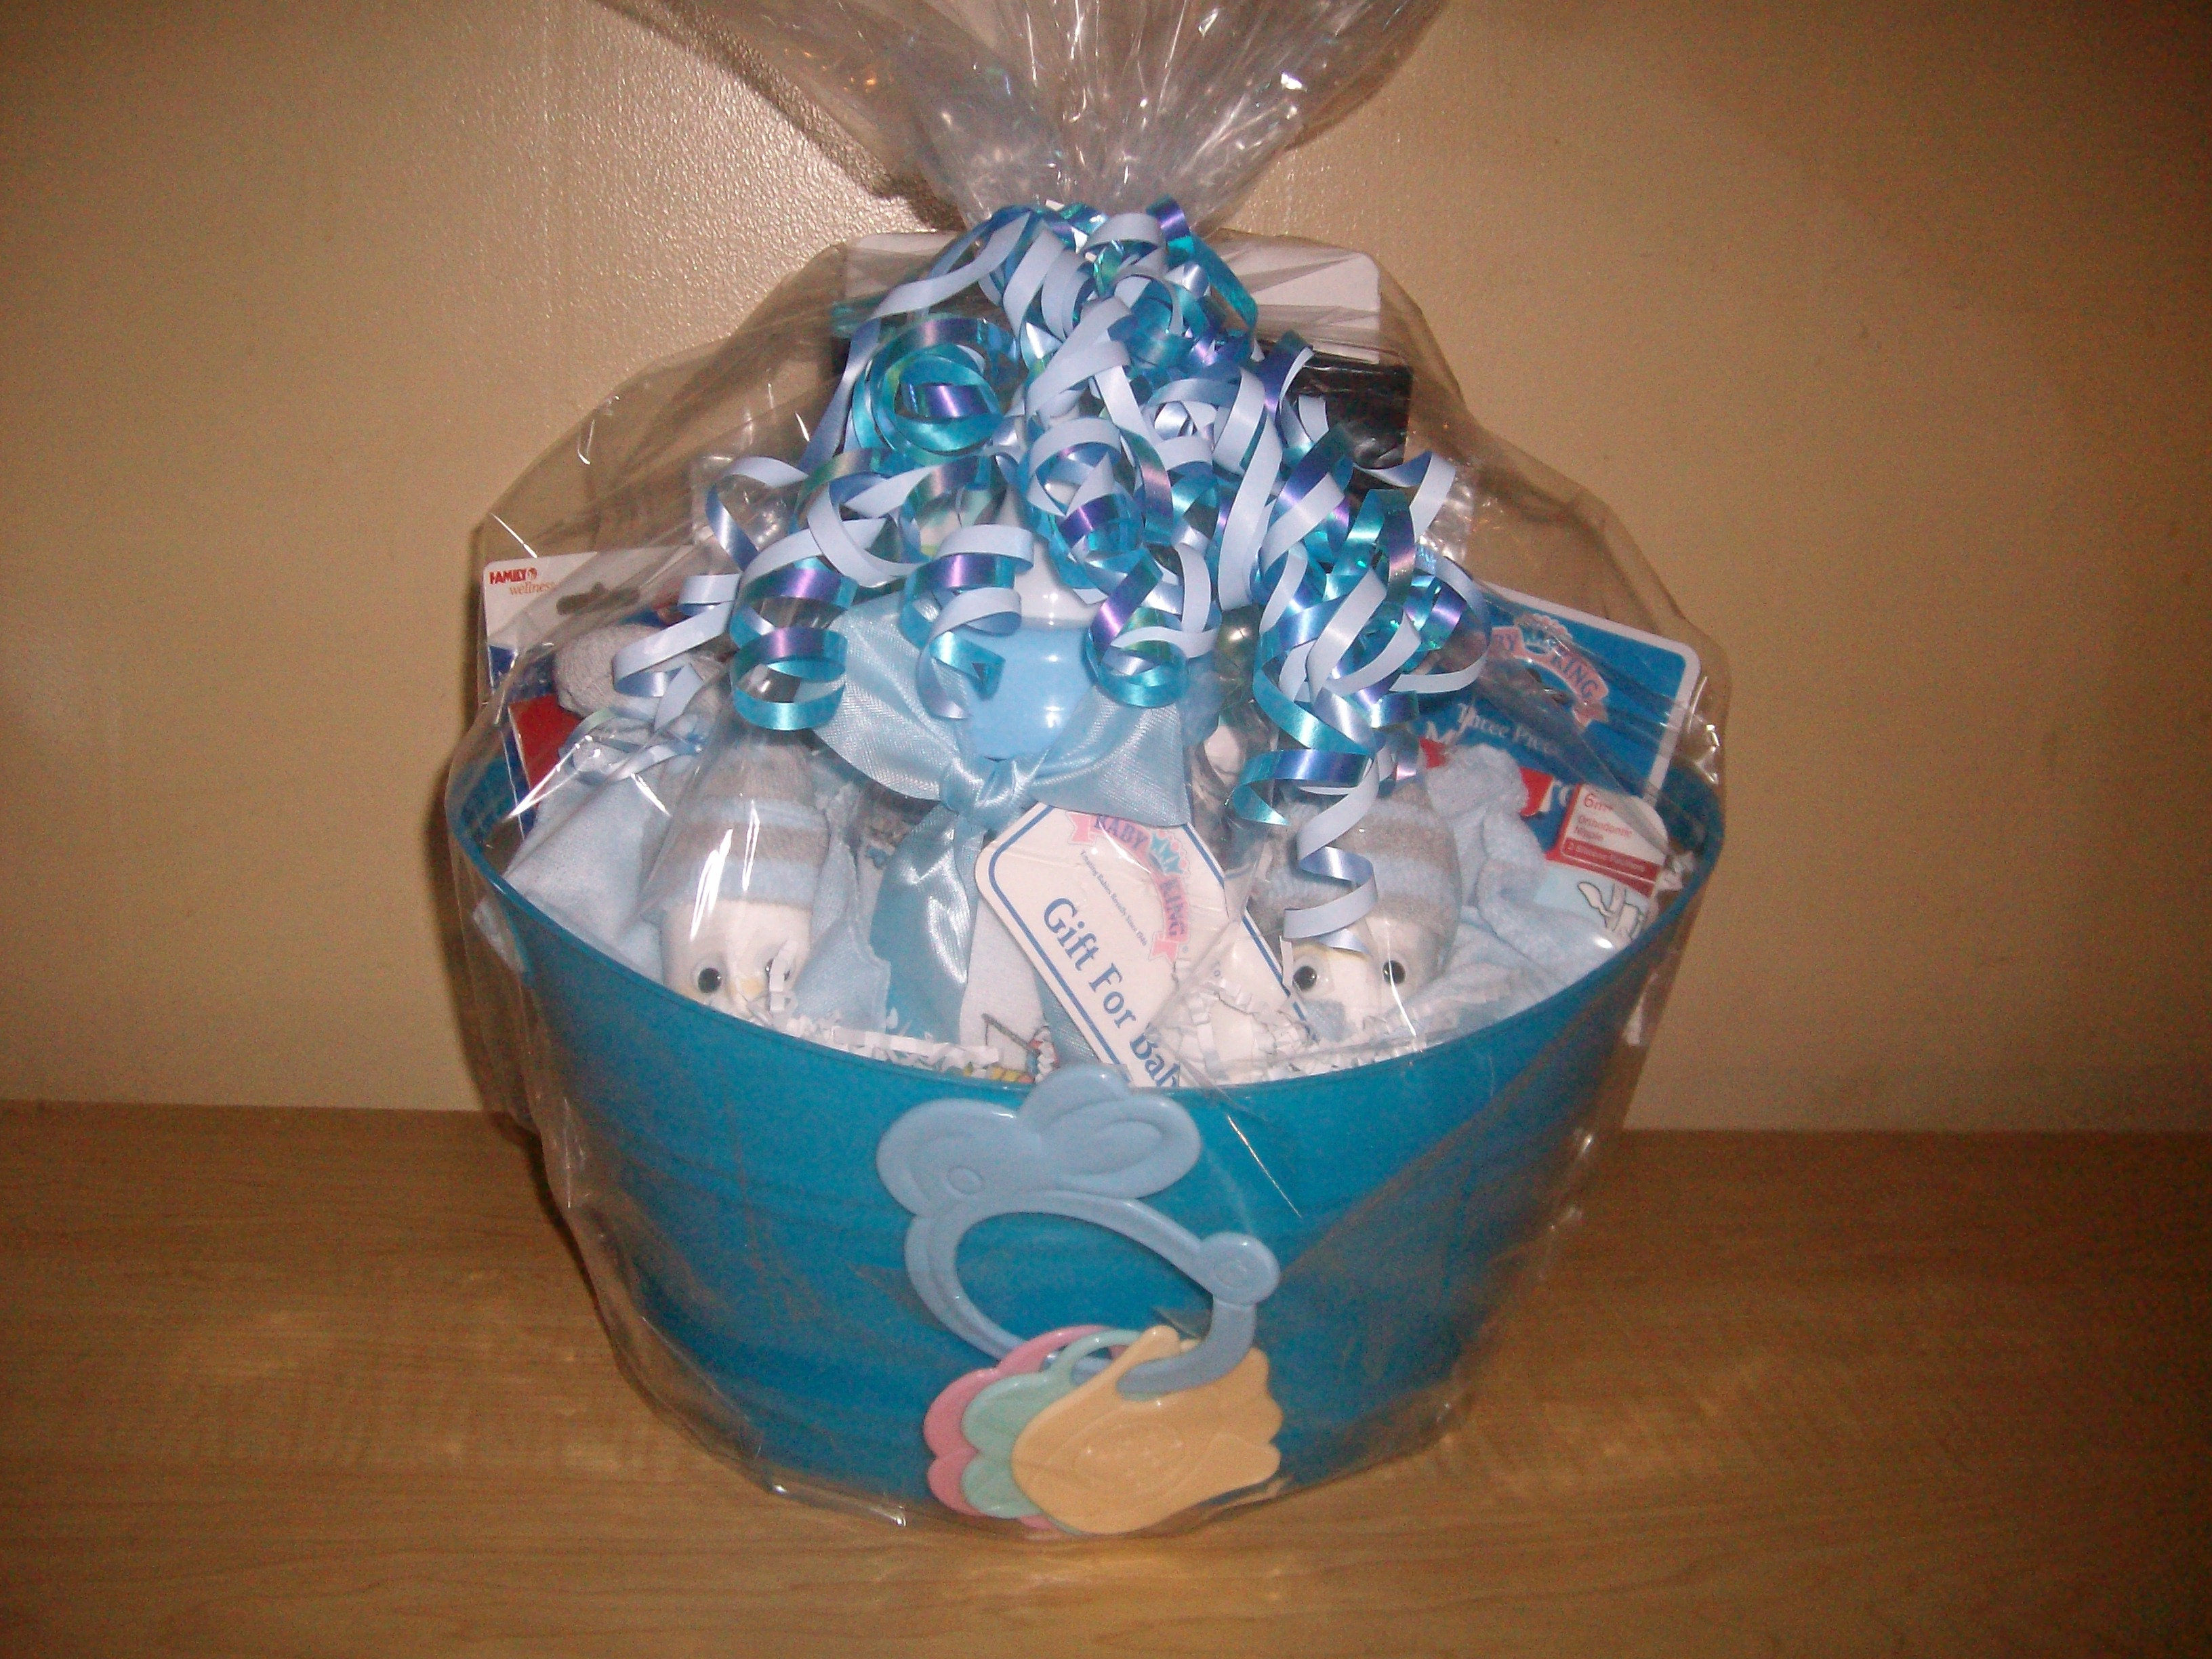 de883fb1f18b New Arrival Baby Boy Baby Shower Gift Basket or Centerpiece on Storenvy